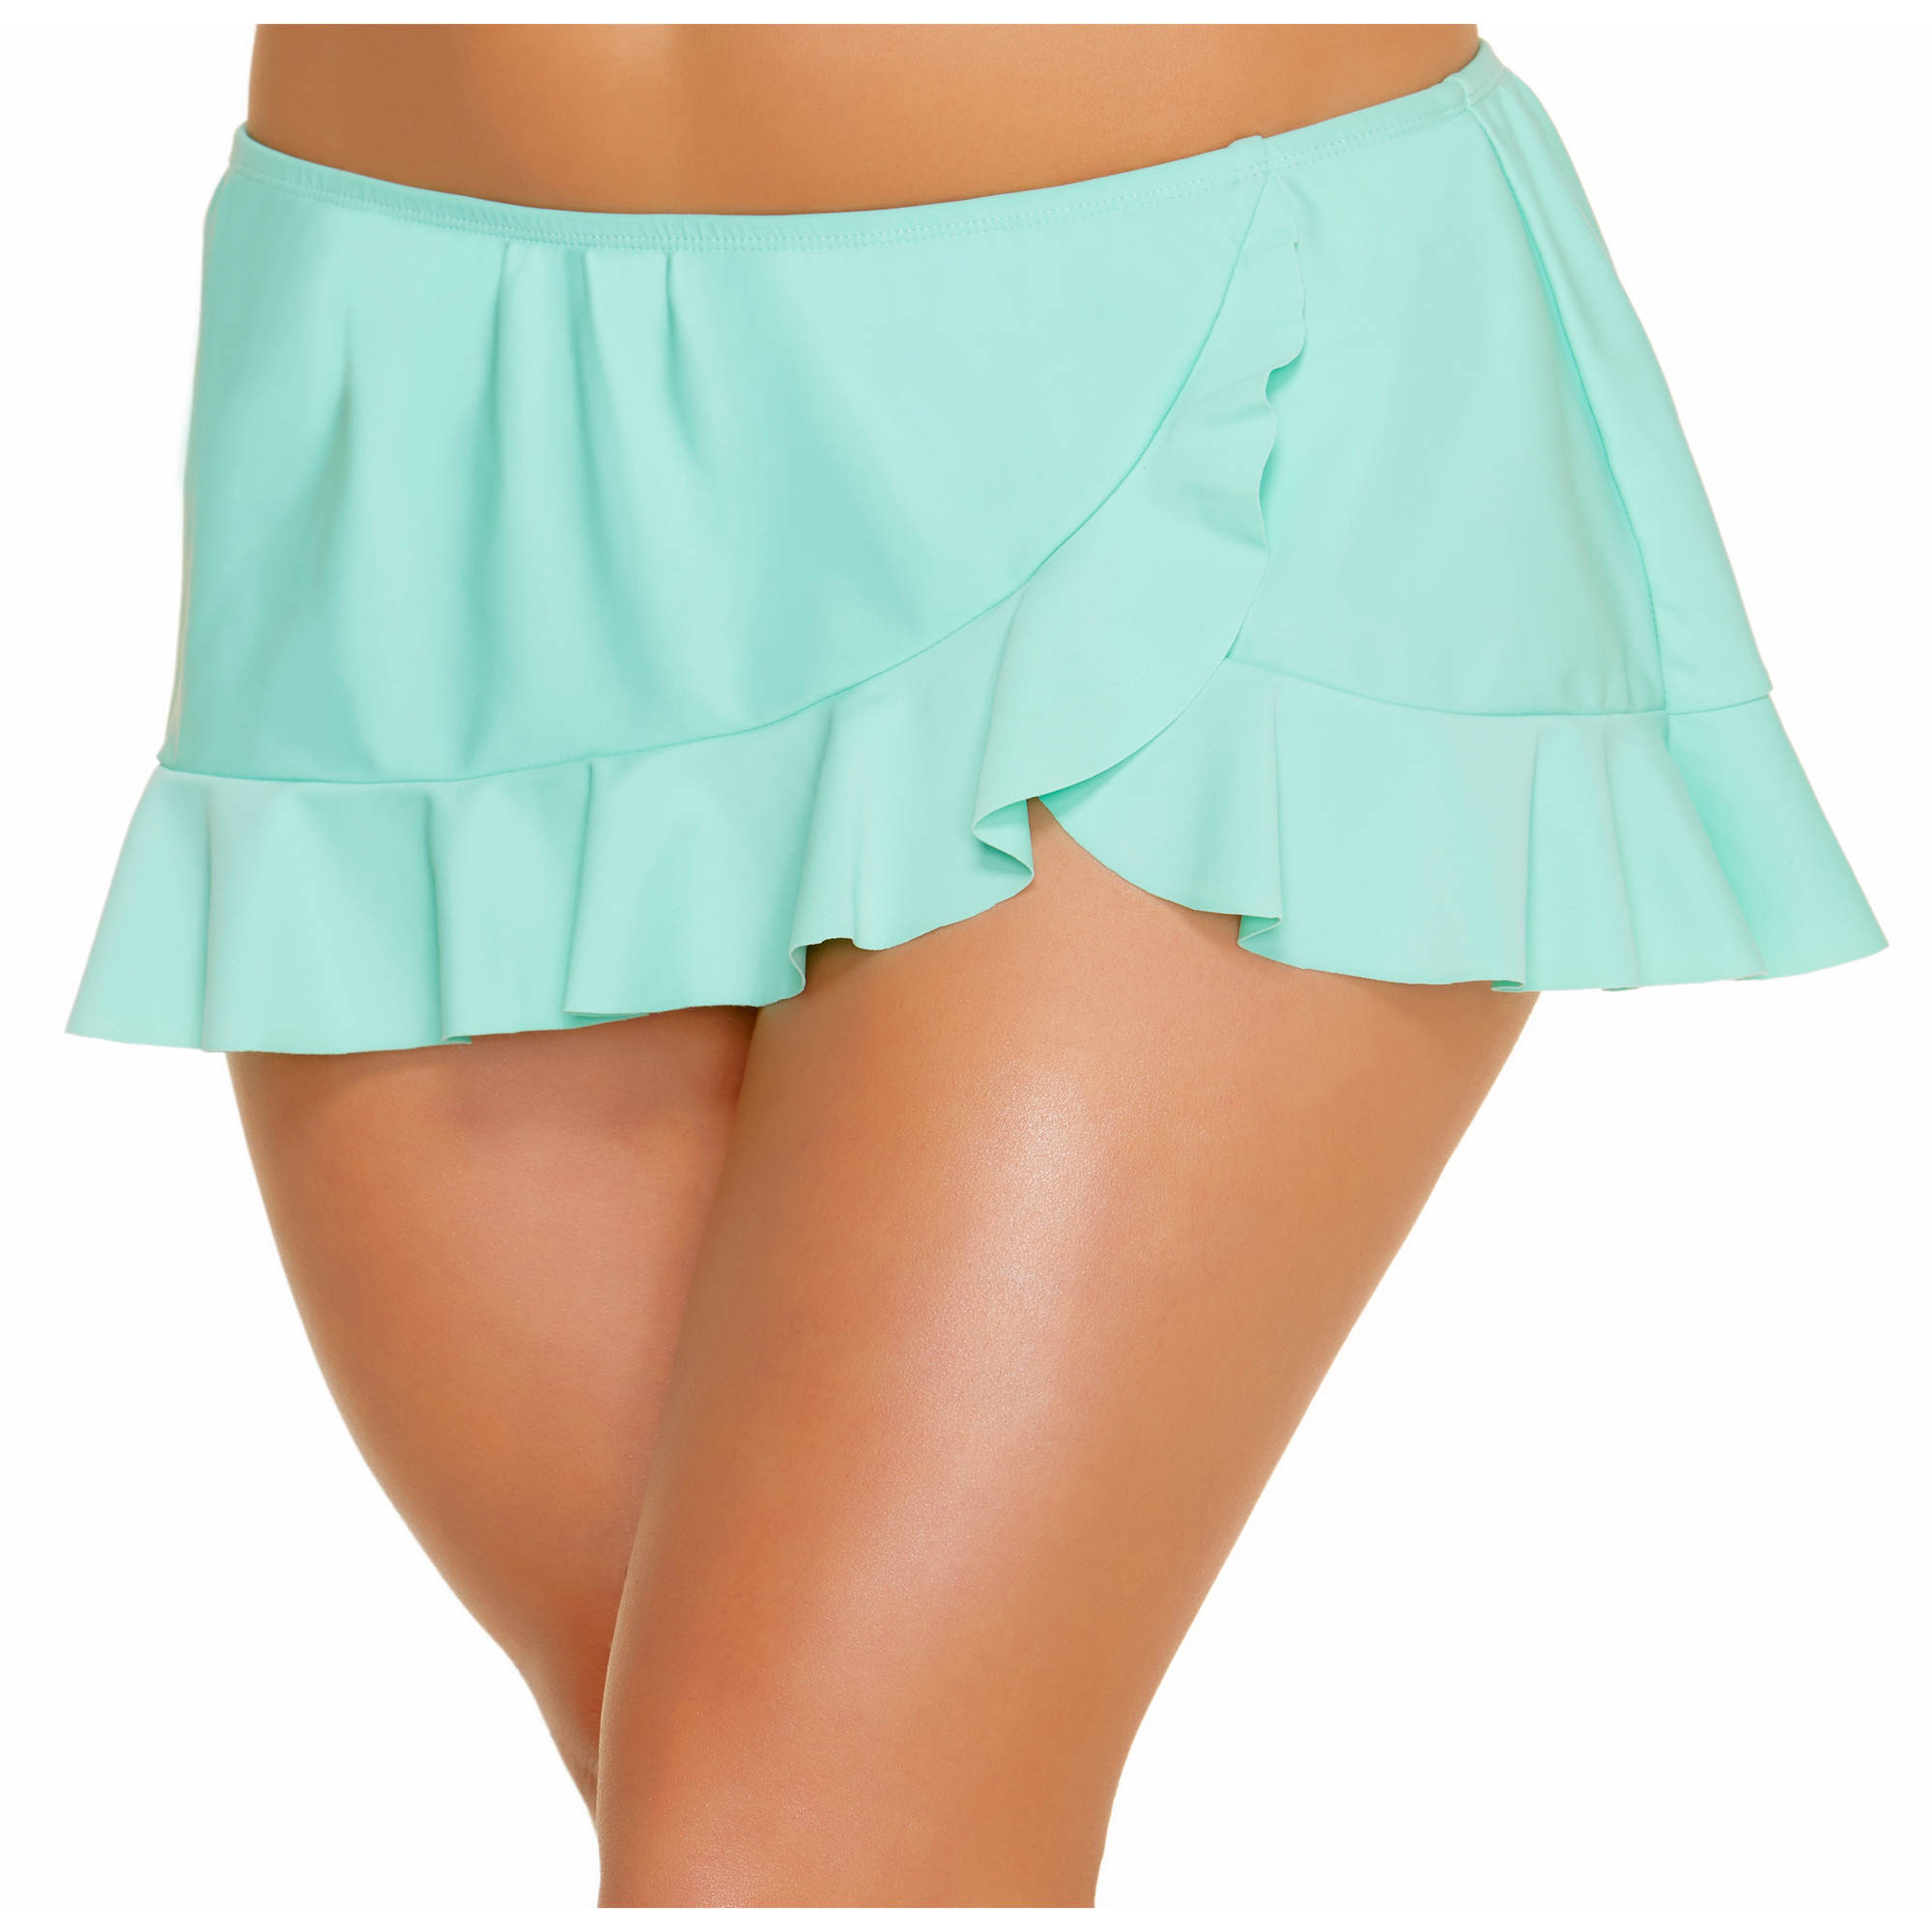 Collections by Catalina Women's Plus-Size Ruffle Skirted Swimsuit Bottom